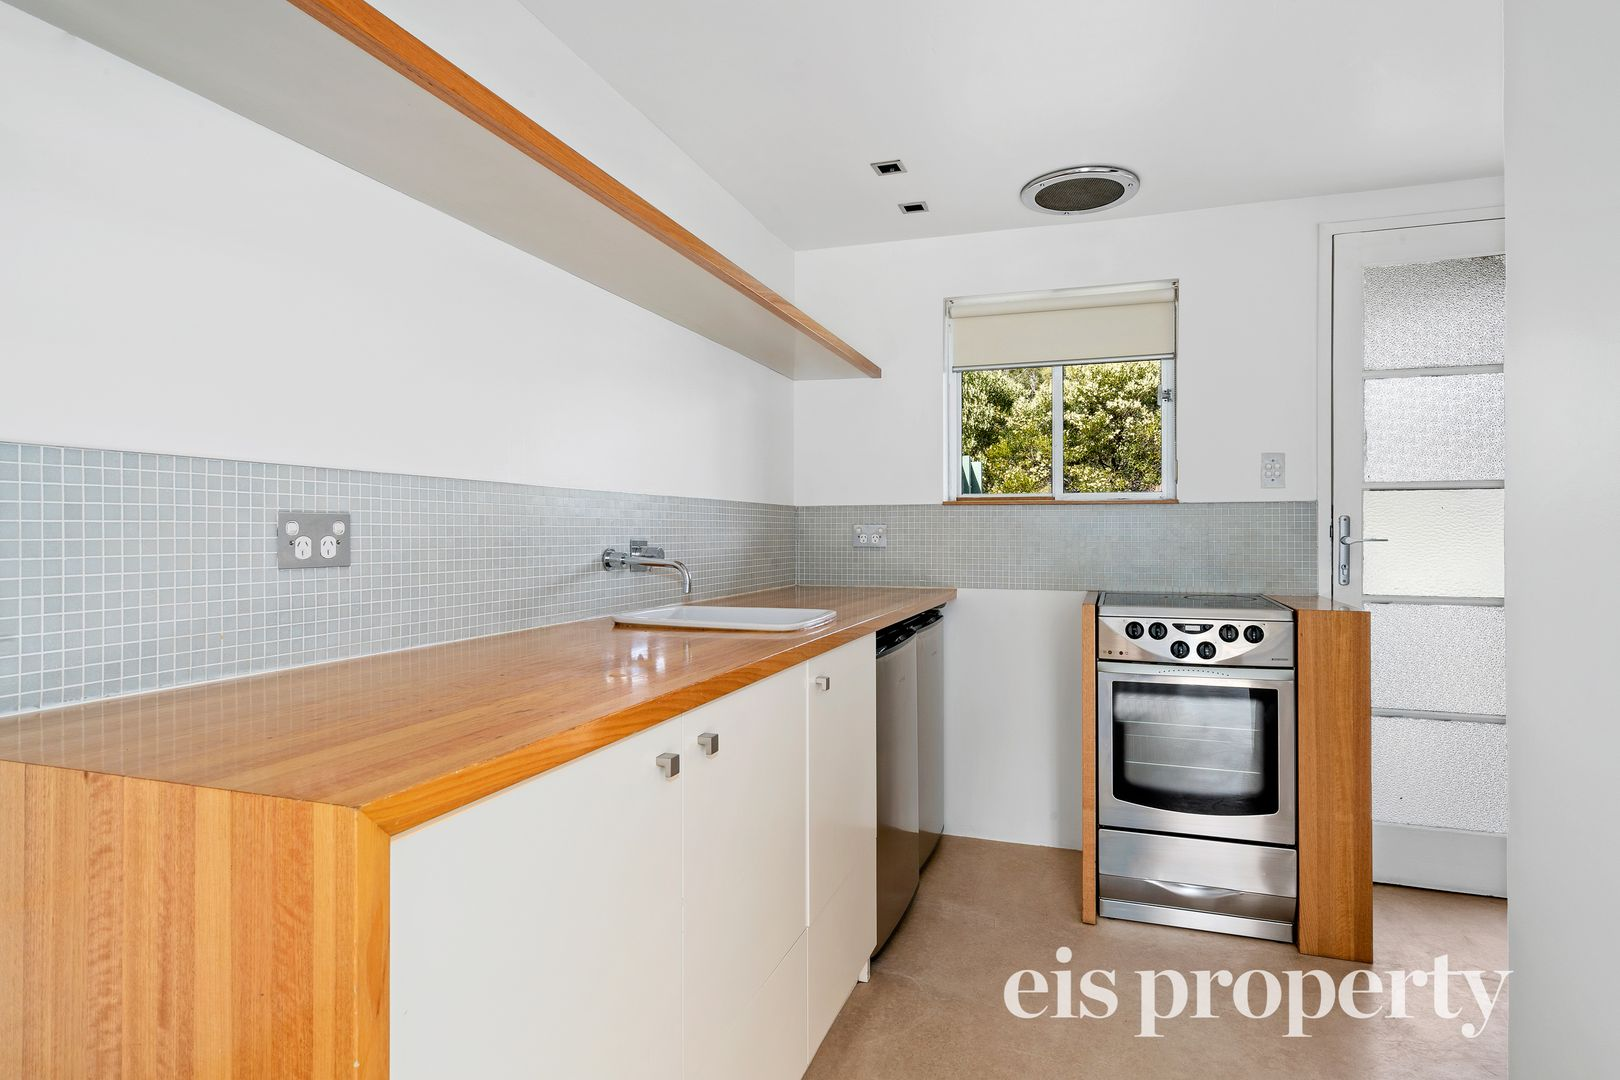 1 bedrooms Apartment / Unit / Flat in 10/464A Nelson Road MOUNT NELSON TAS, 7007